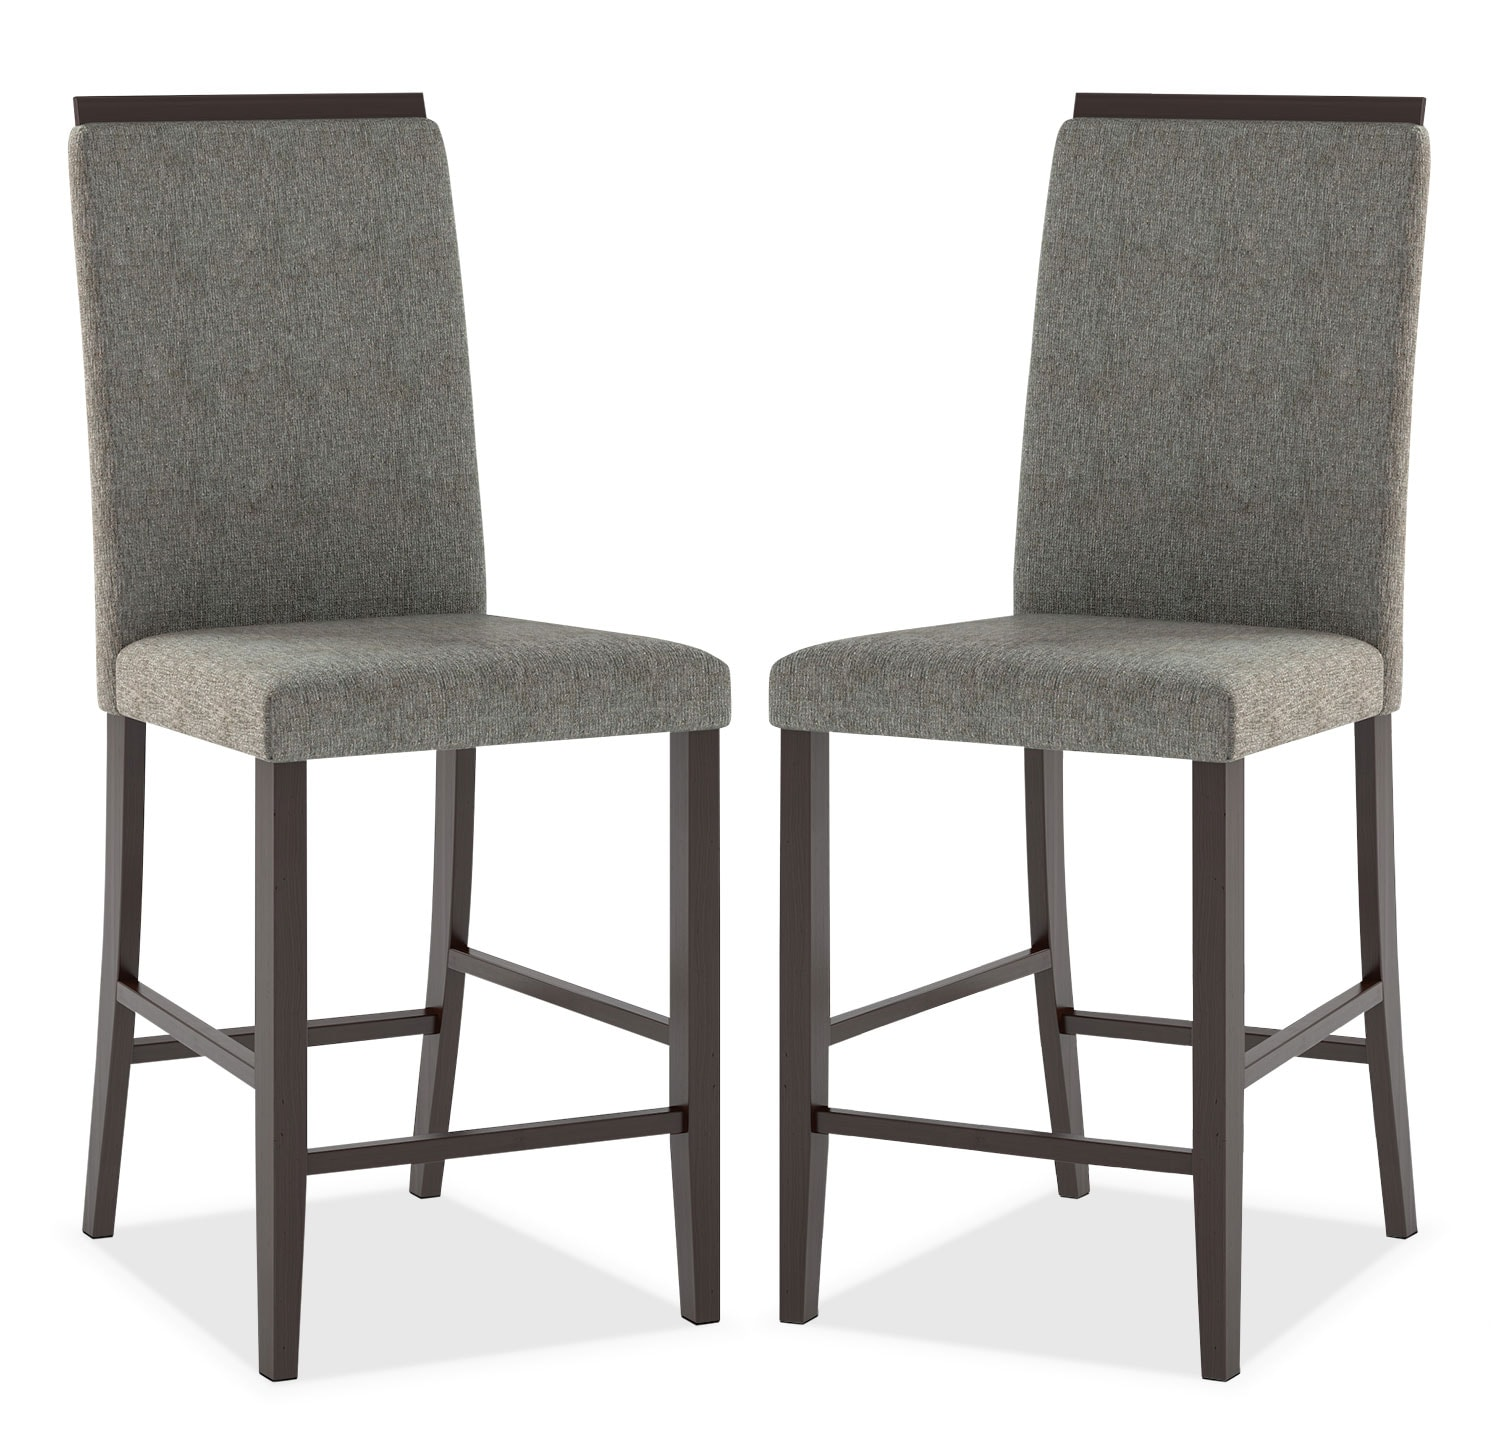 Bistro Counter-Height Dining Chair with Capped Backrest, Set of 2 – Pewter Grey